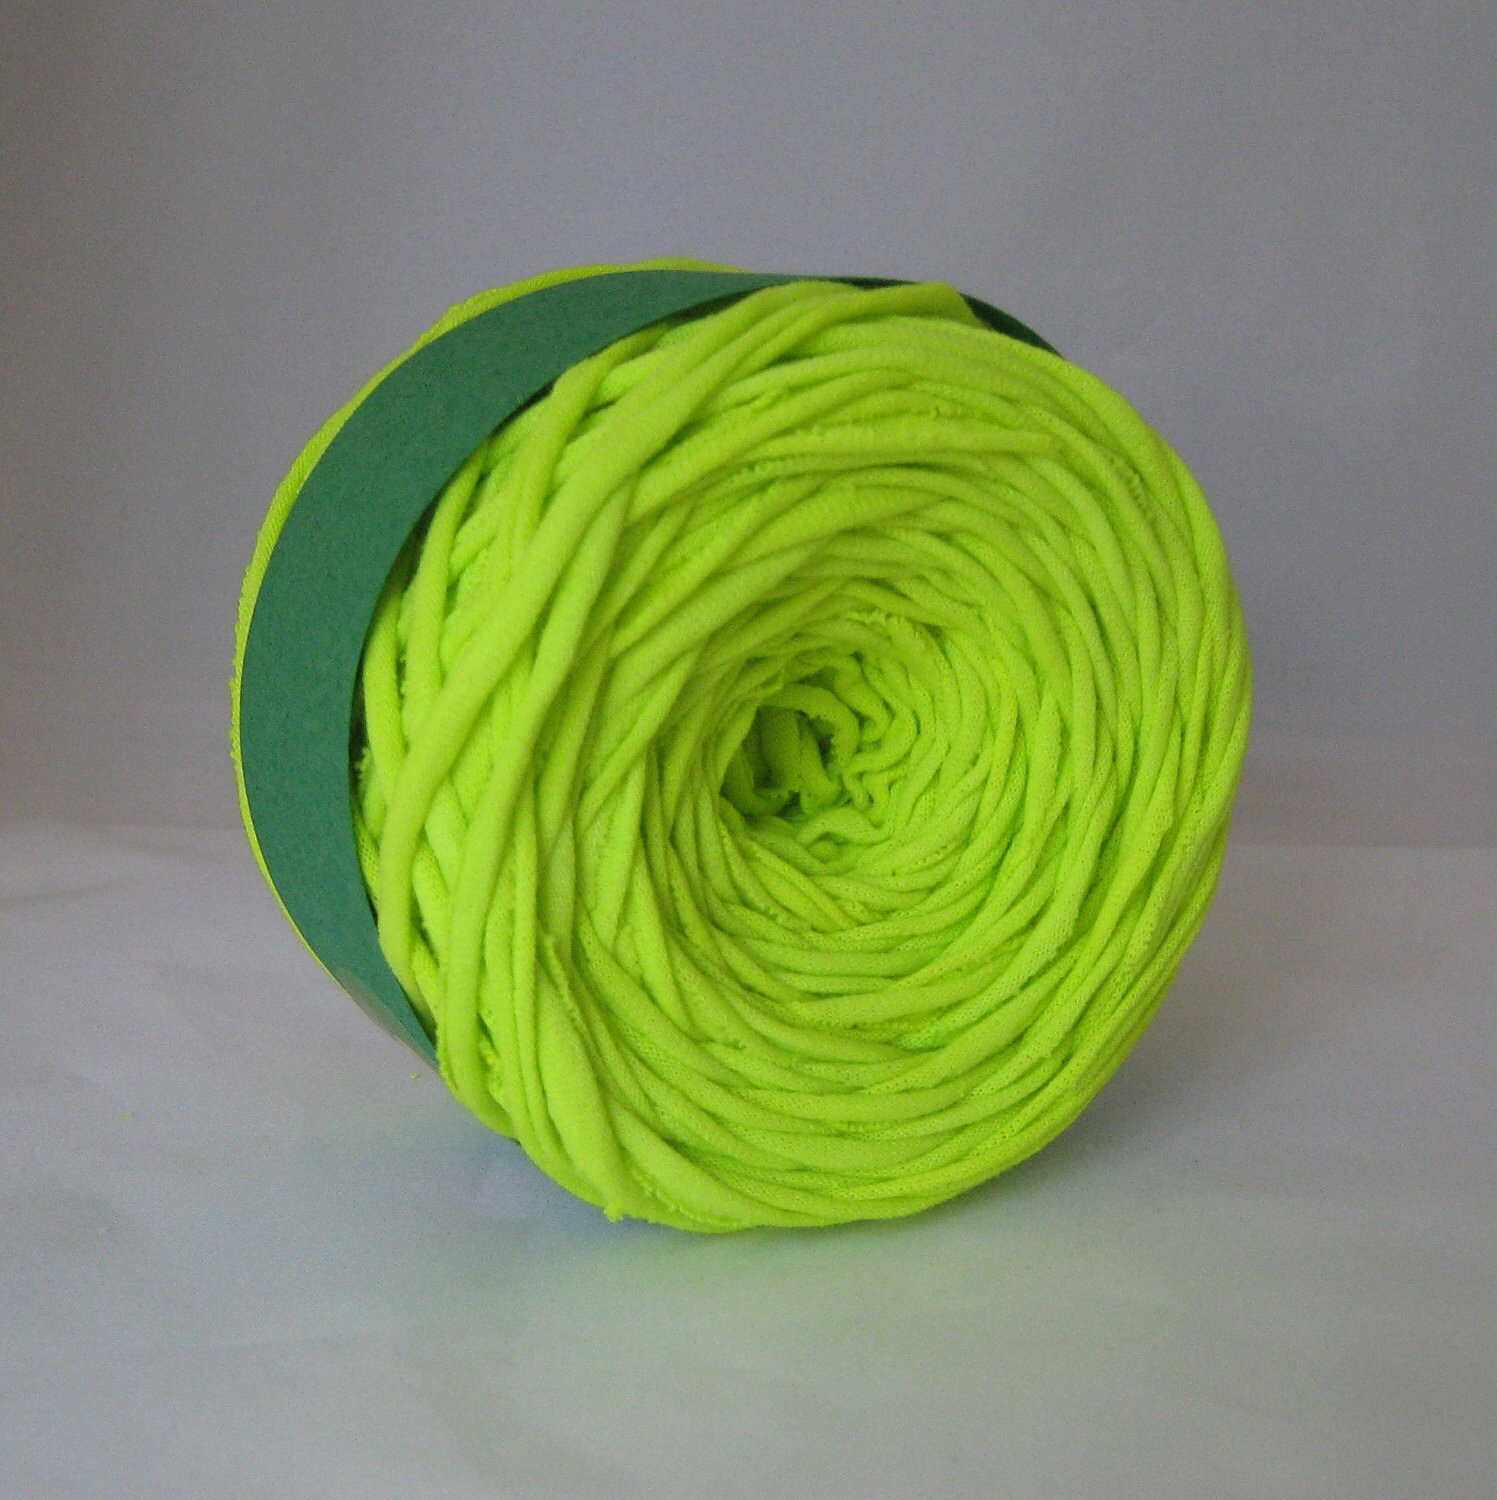 T Shirt Yarn Hand Dyed Yarn Neon Green Yarn 60 Yards